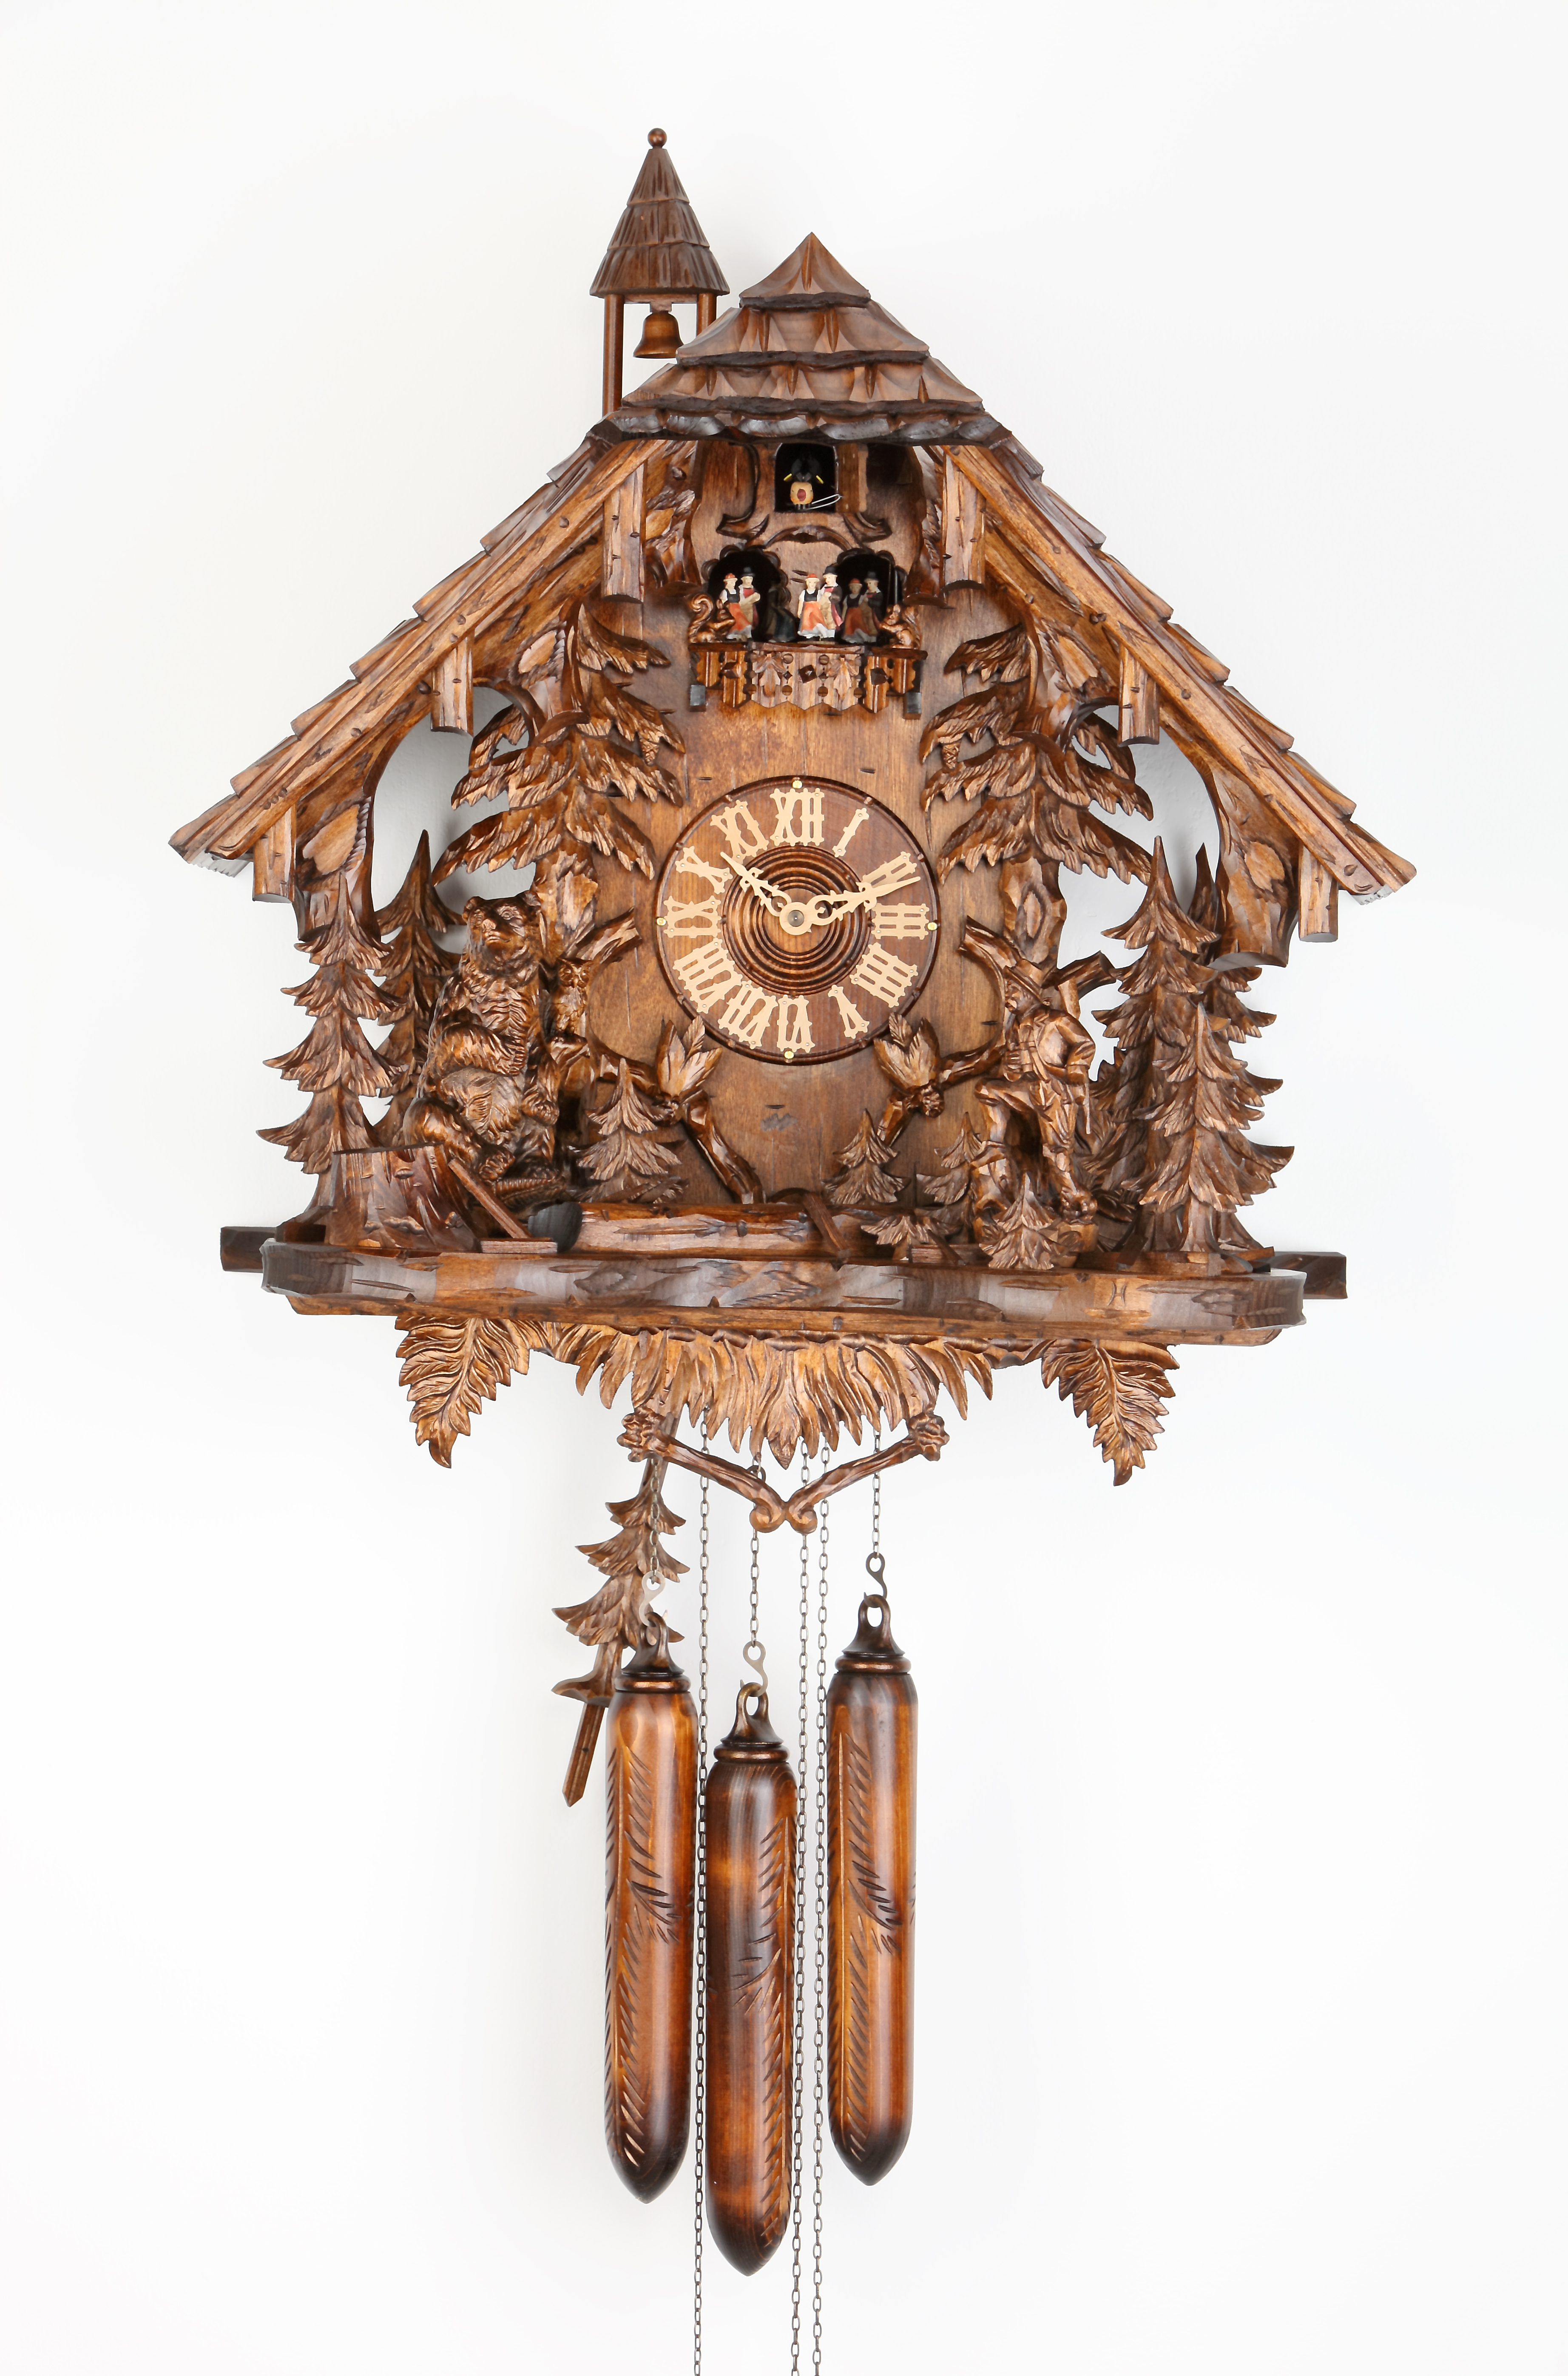 8 Days Music Dancer  Cuckoo Clock with forest scene, hunter and bear